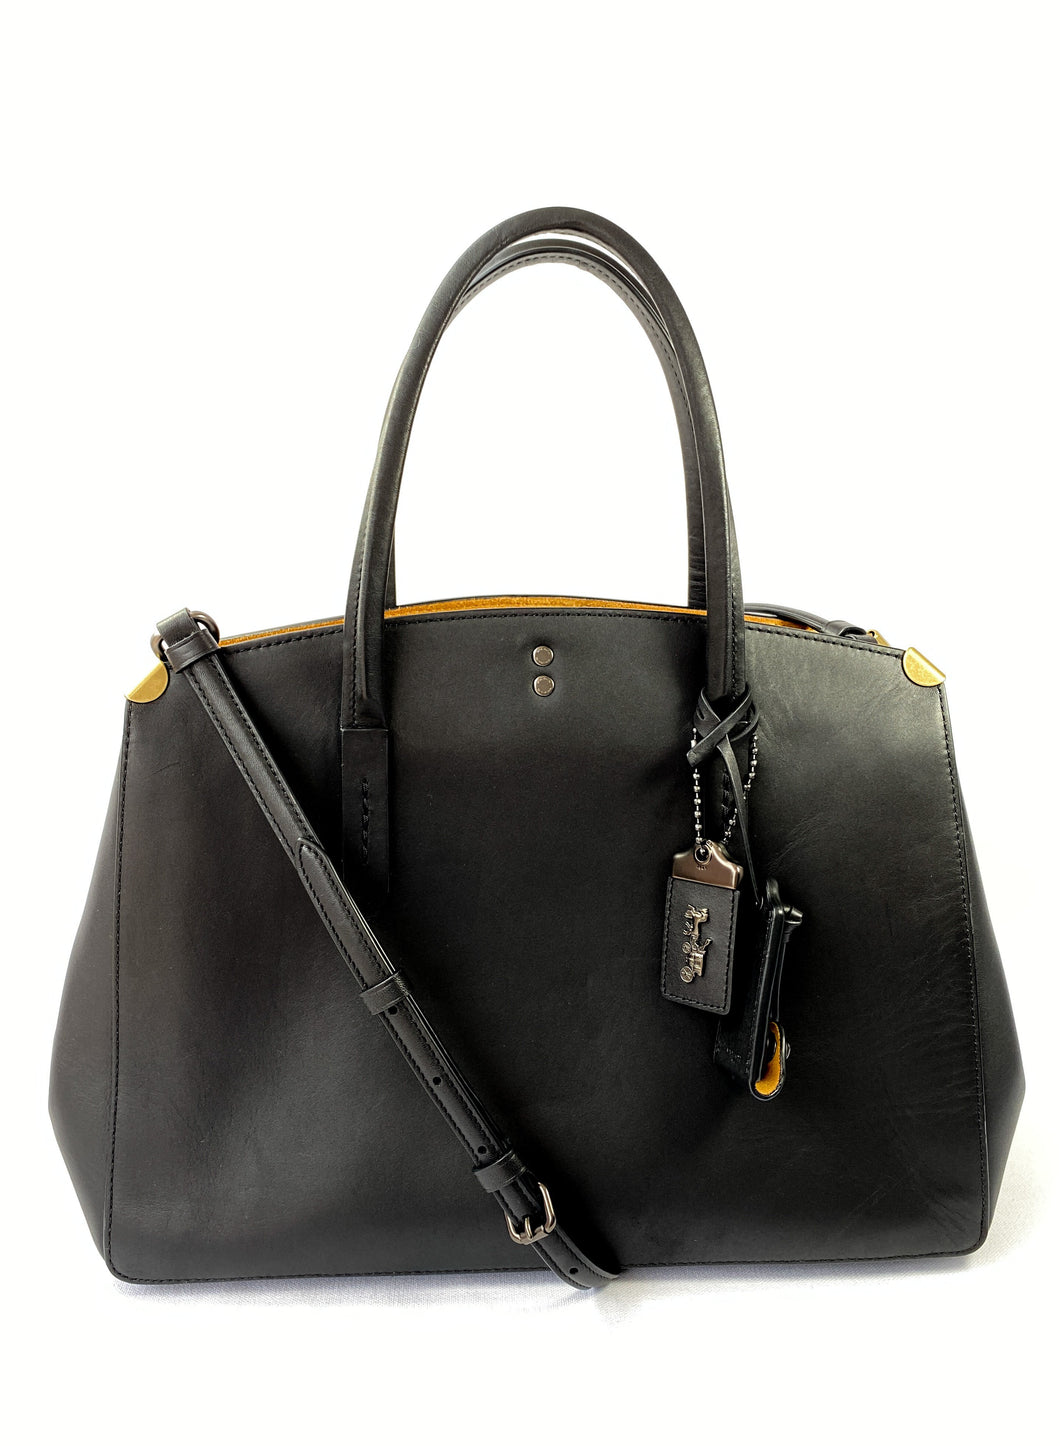 Coach black Cooper leather carryall 22821 - My Girlfriend's Wardrobe York Pa